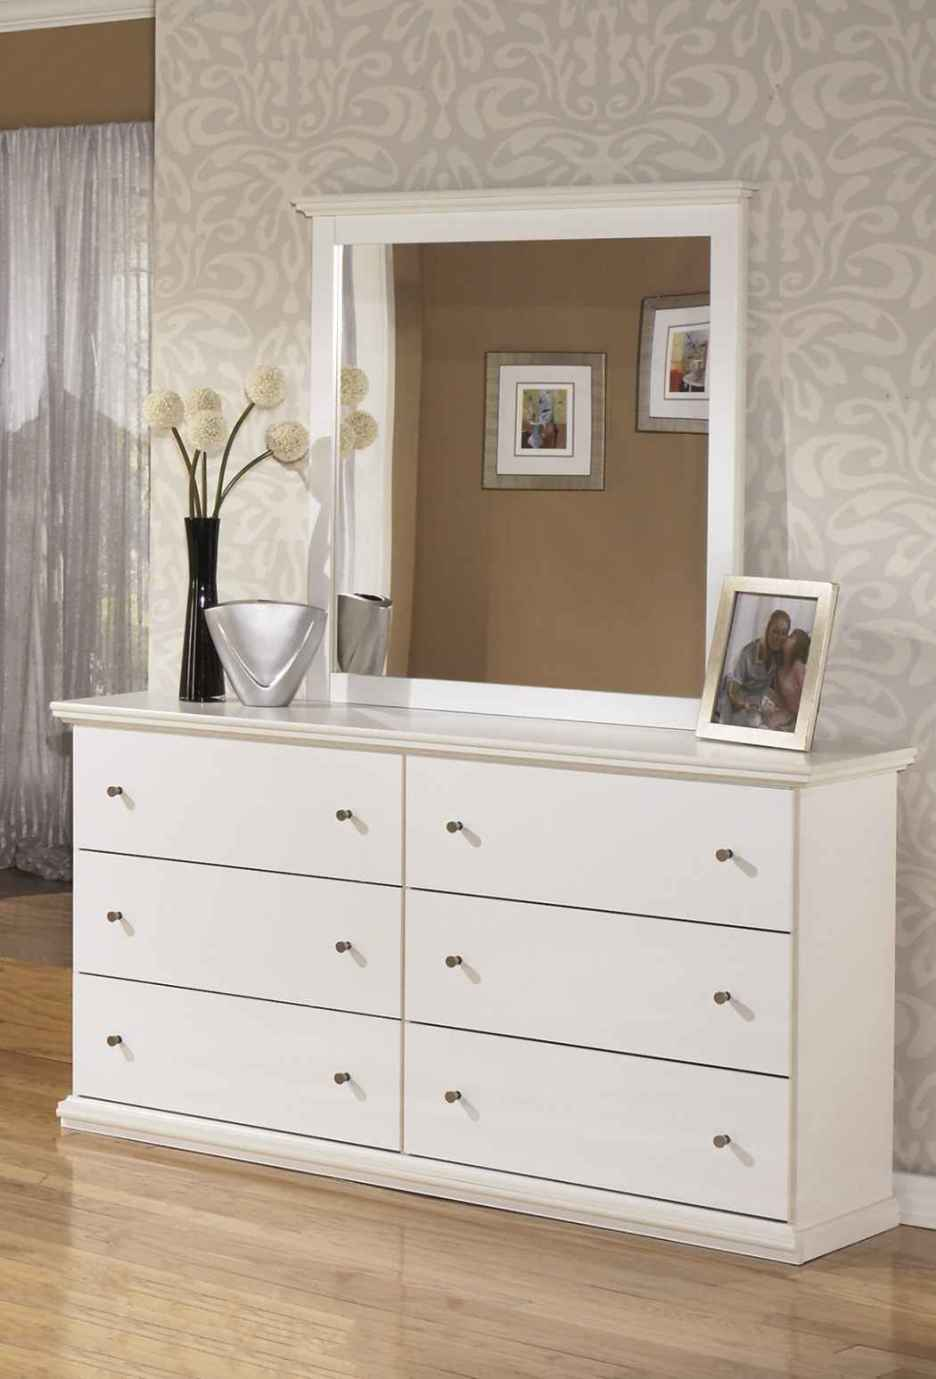 Picture of: Narrow Mirror Dressers For Small Spaces